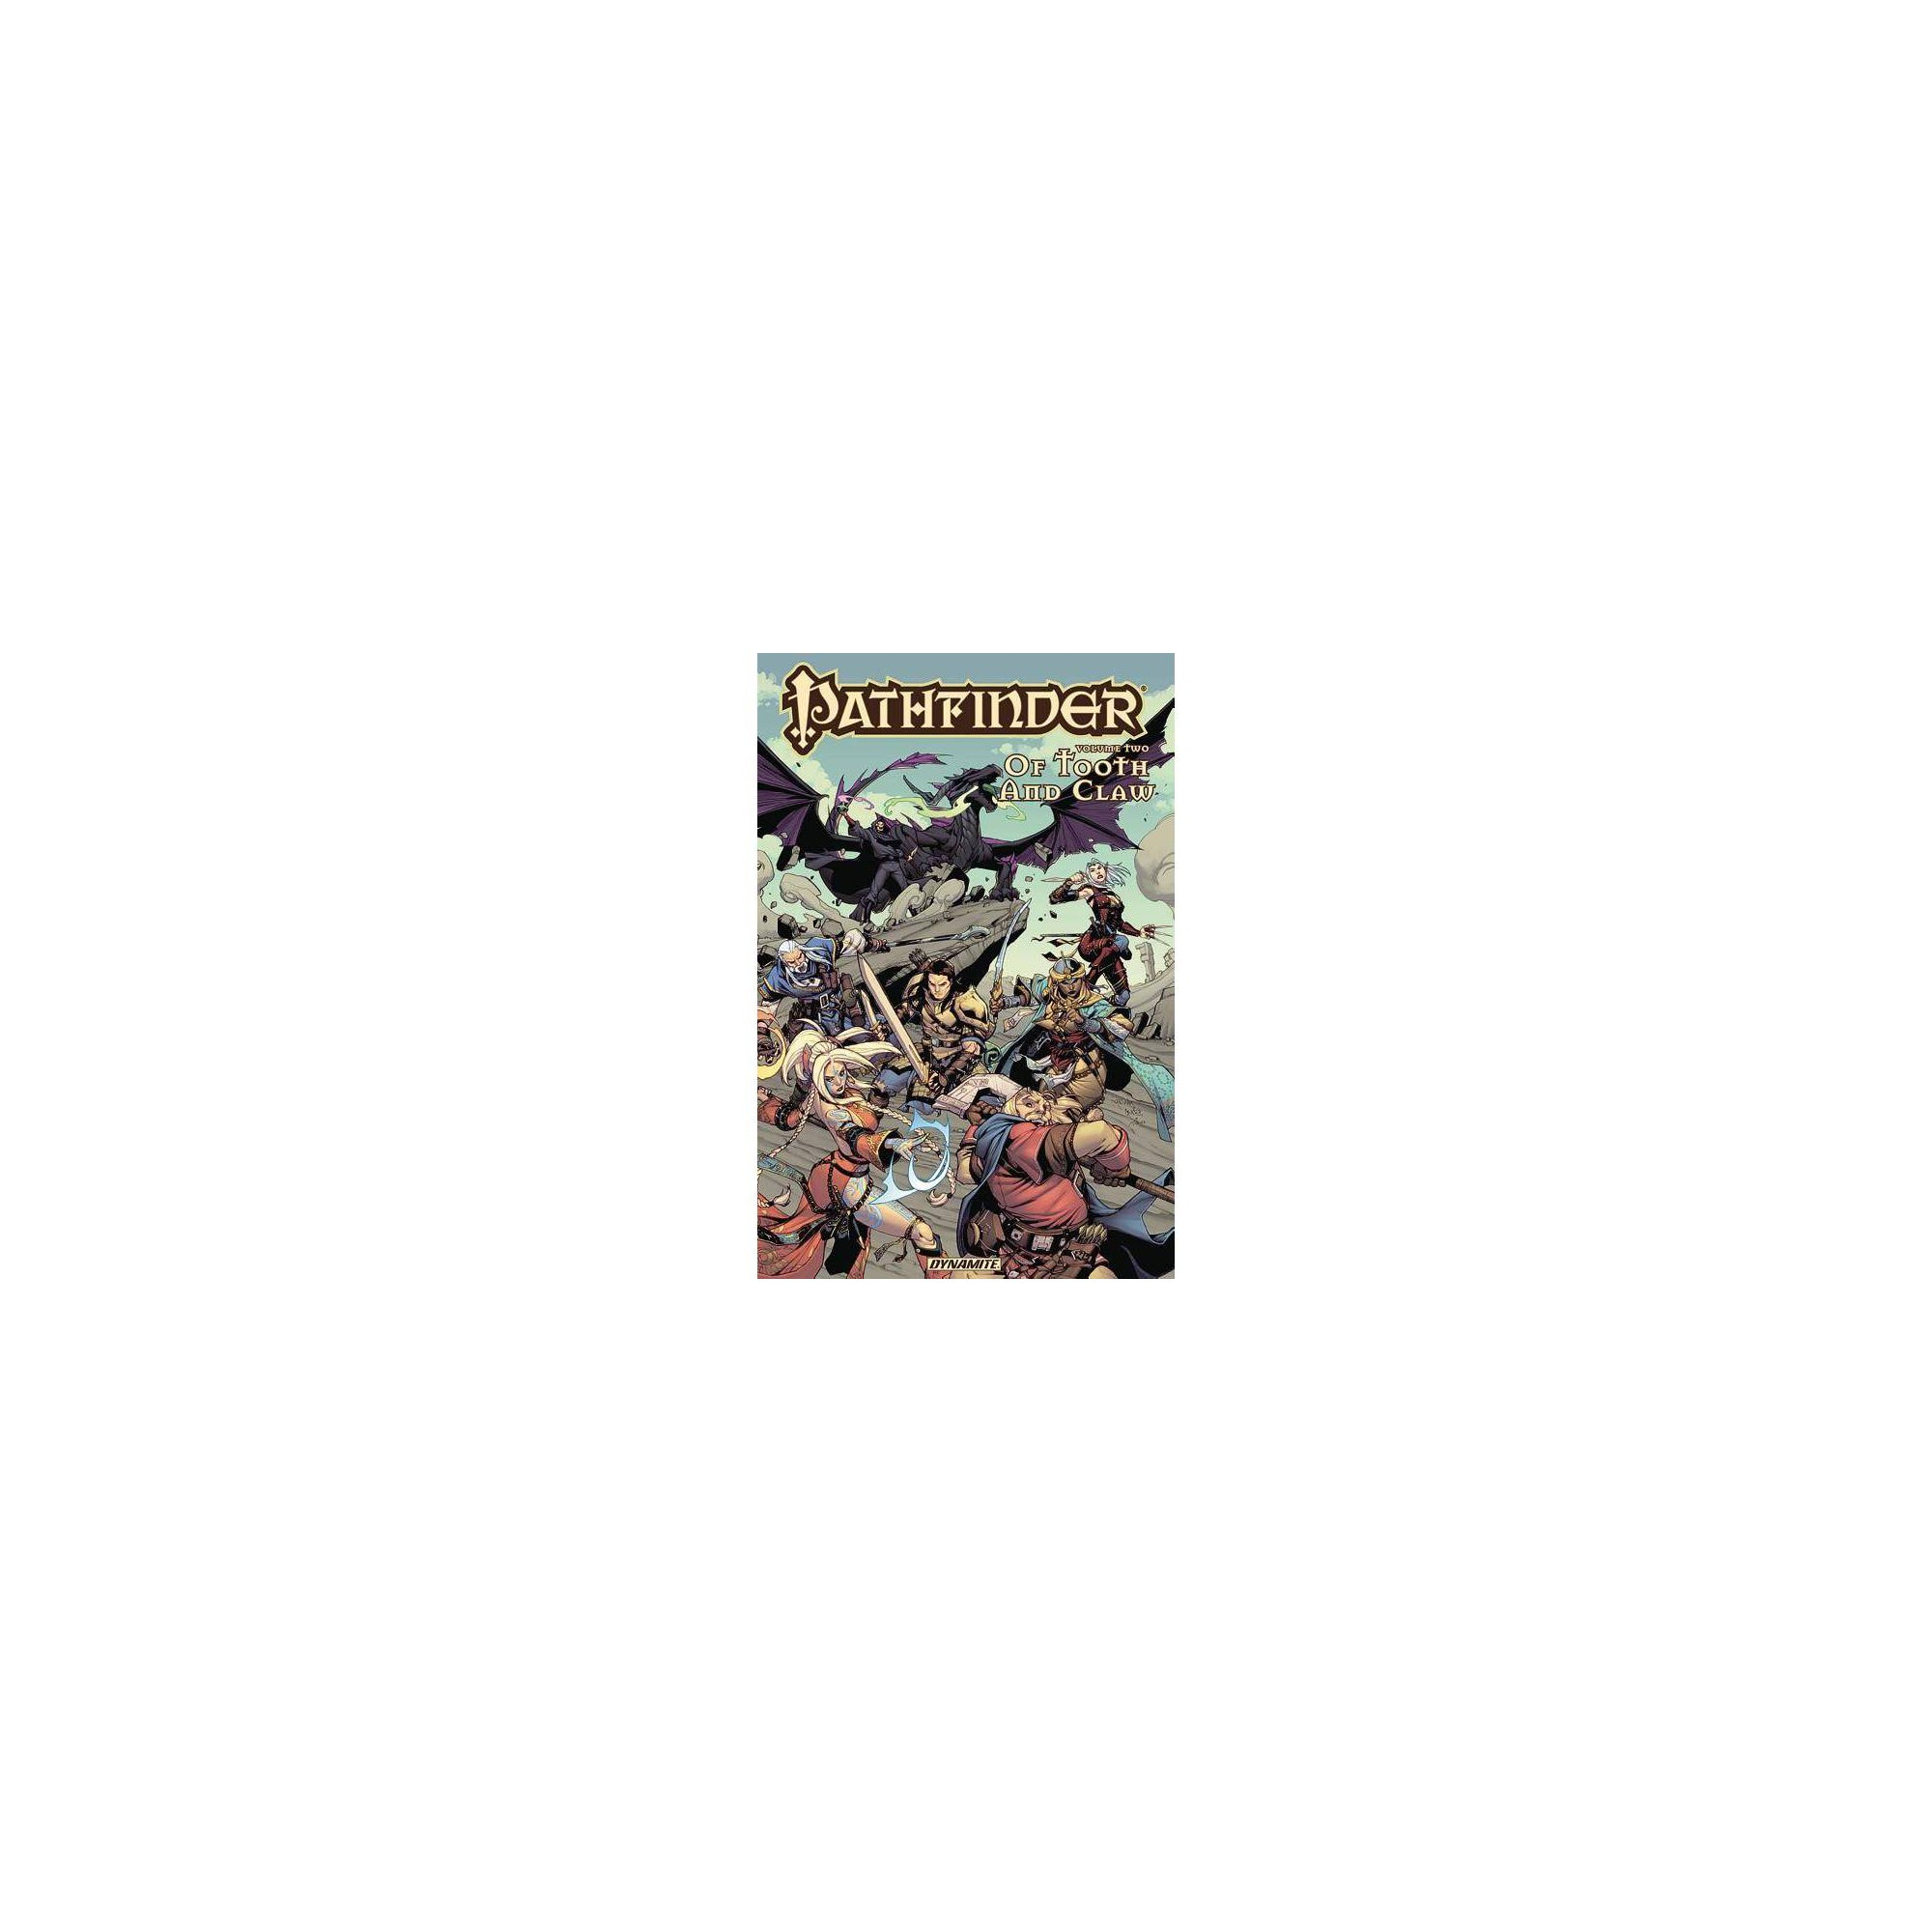 Pathfinder Vol. 2: Of Tooth & Claw Tpb - by Jim Zub (Paperback)